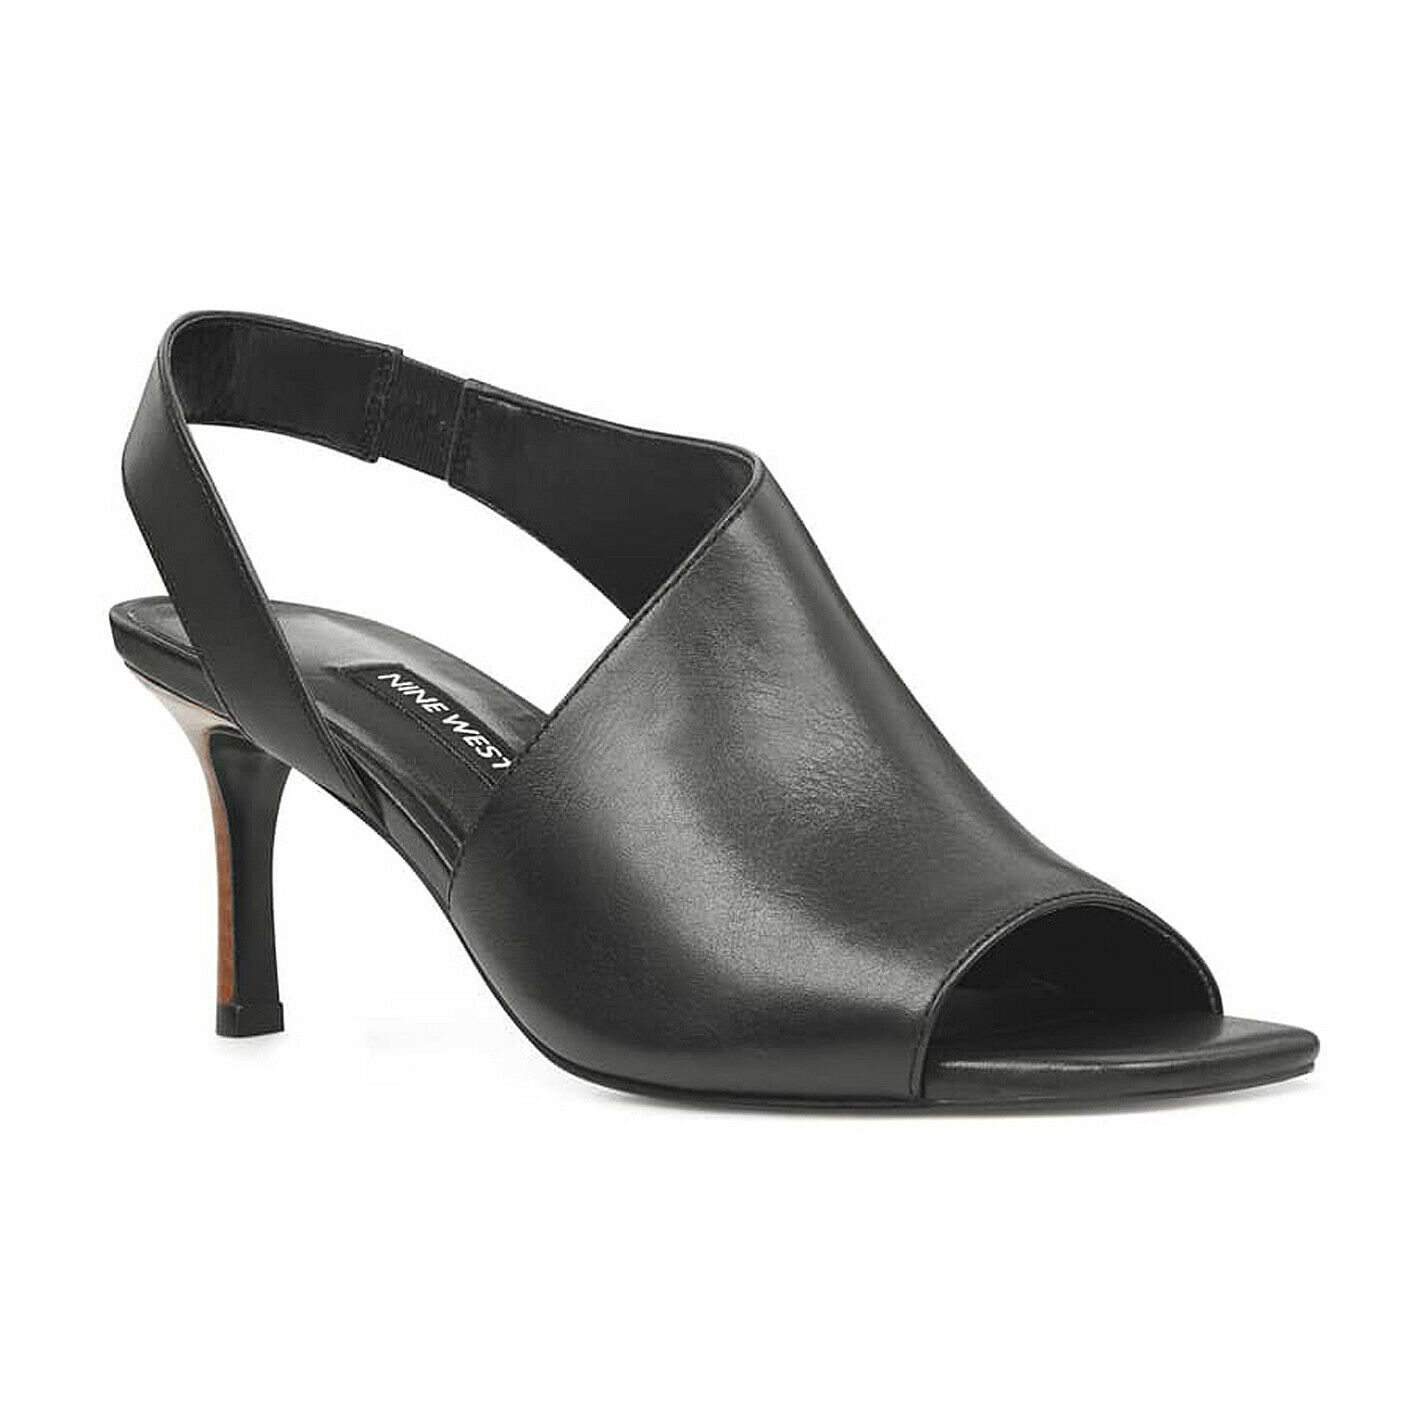 alta quaità NINE WEST Leather Open Toe Toe Toe Peep Toe ORRUS Sandal scarpe 2.8  Heel nero 7.5M NEW  a buon mercato